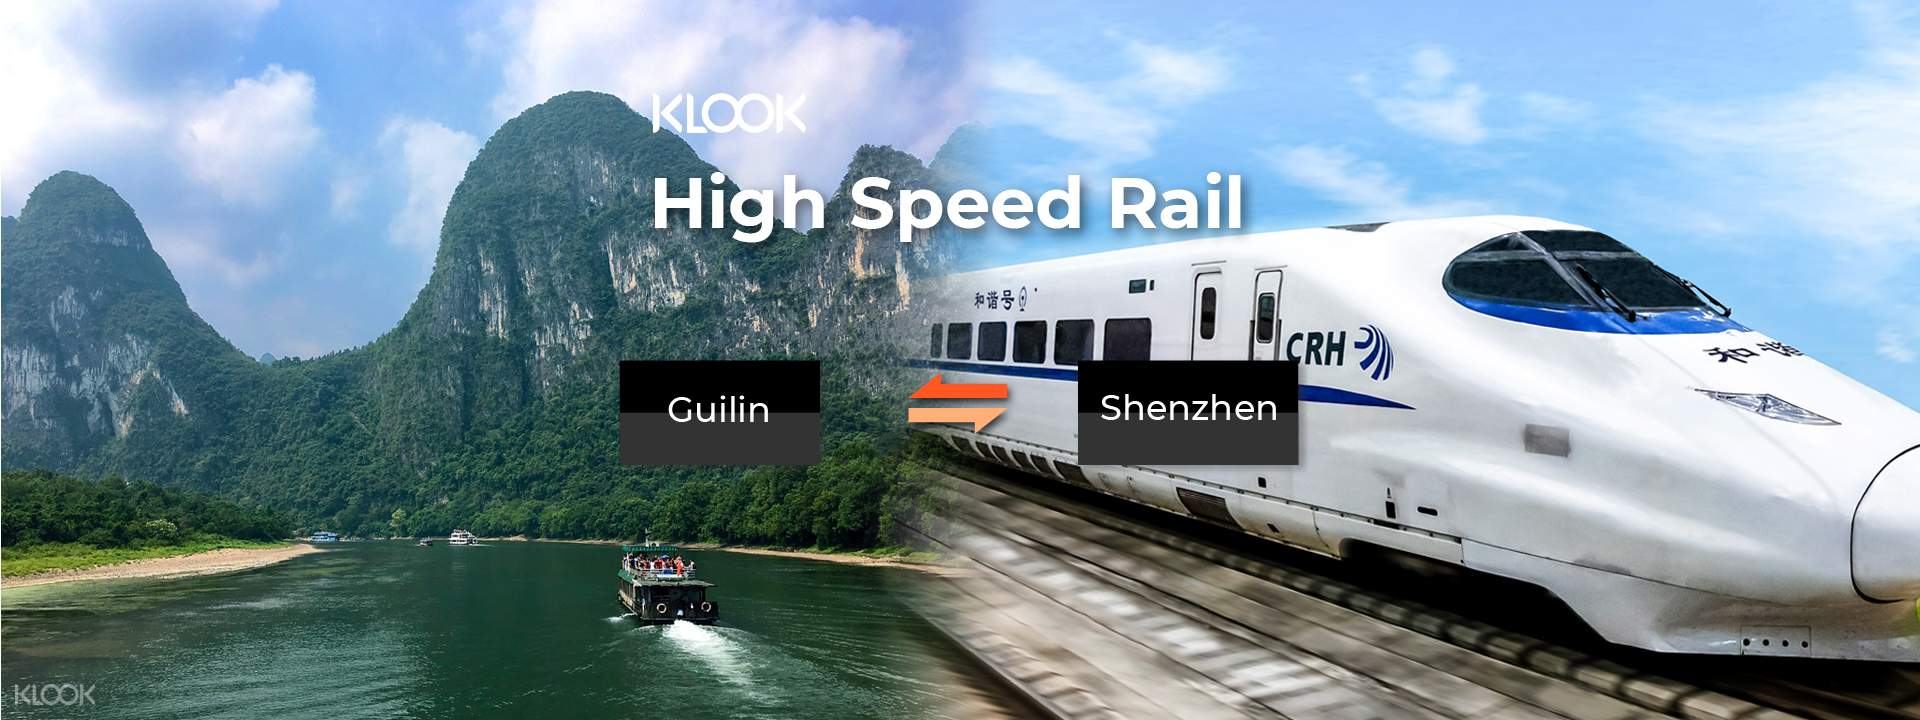 China High-speed Rail Ticket from Guilin to/from Shenzhen